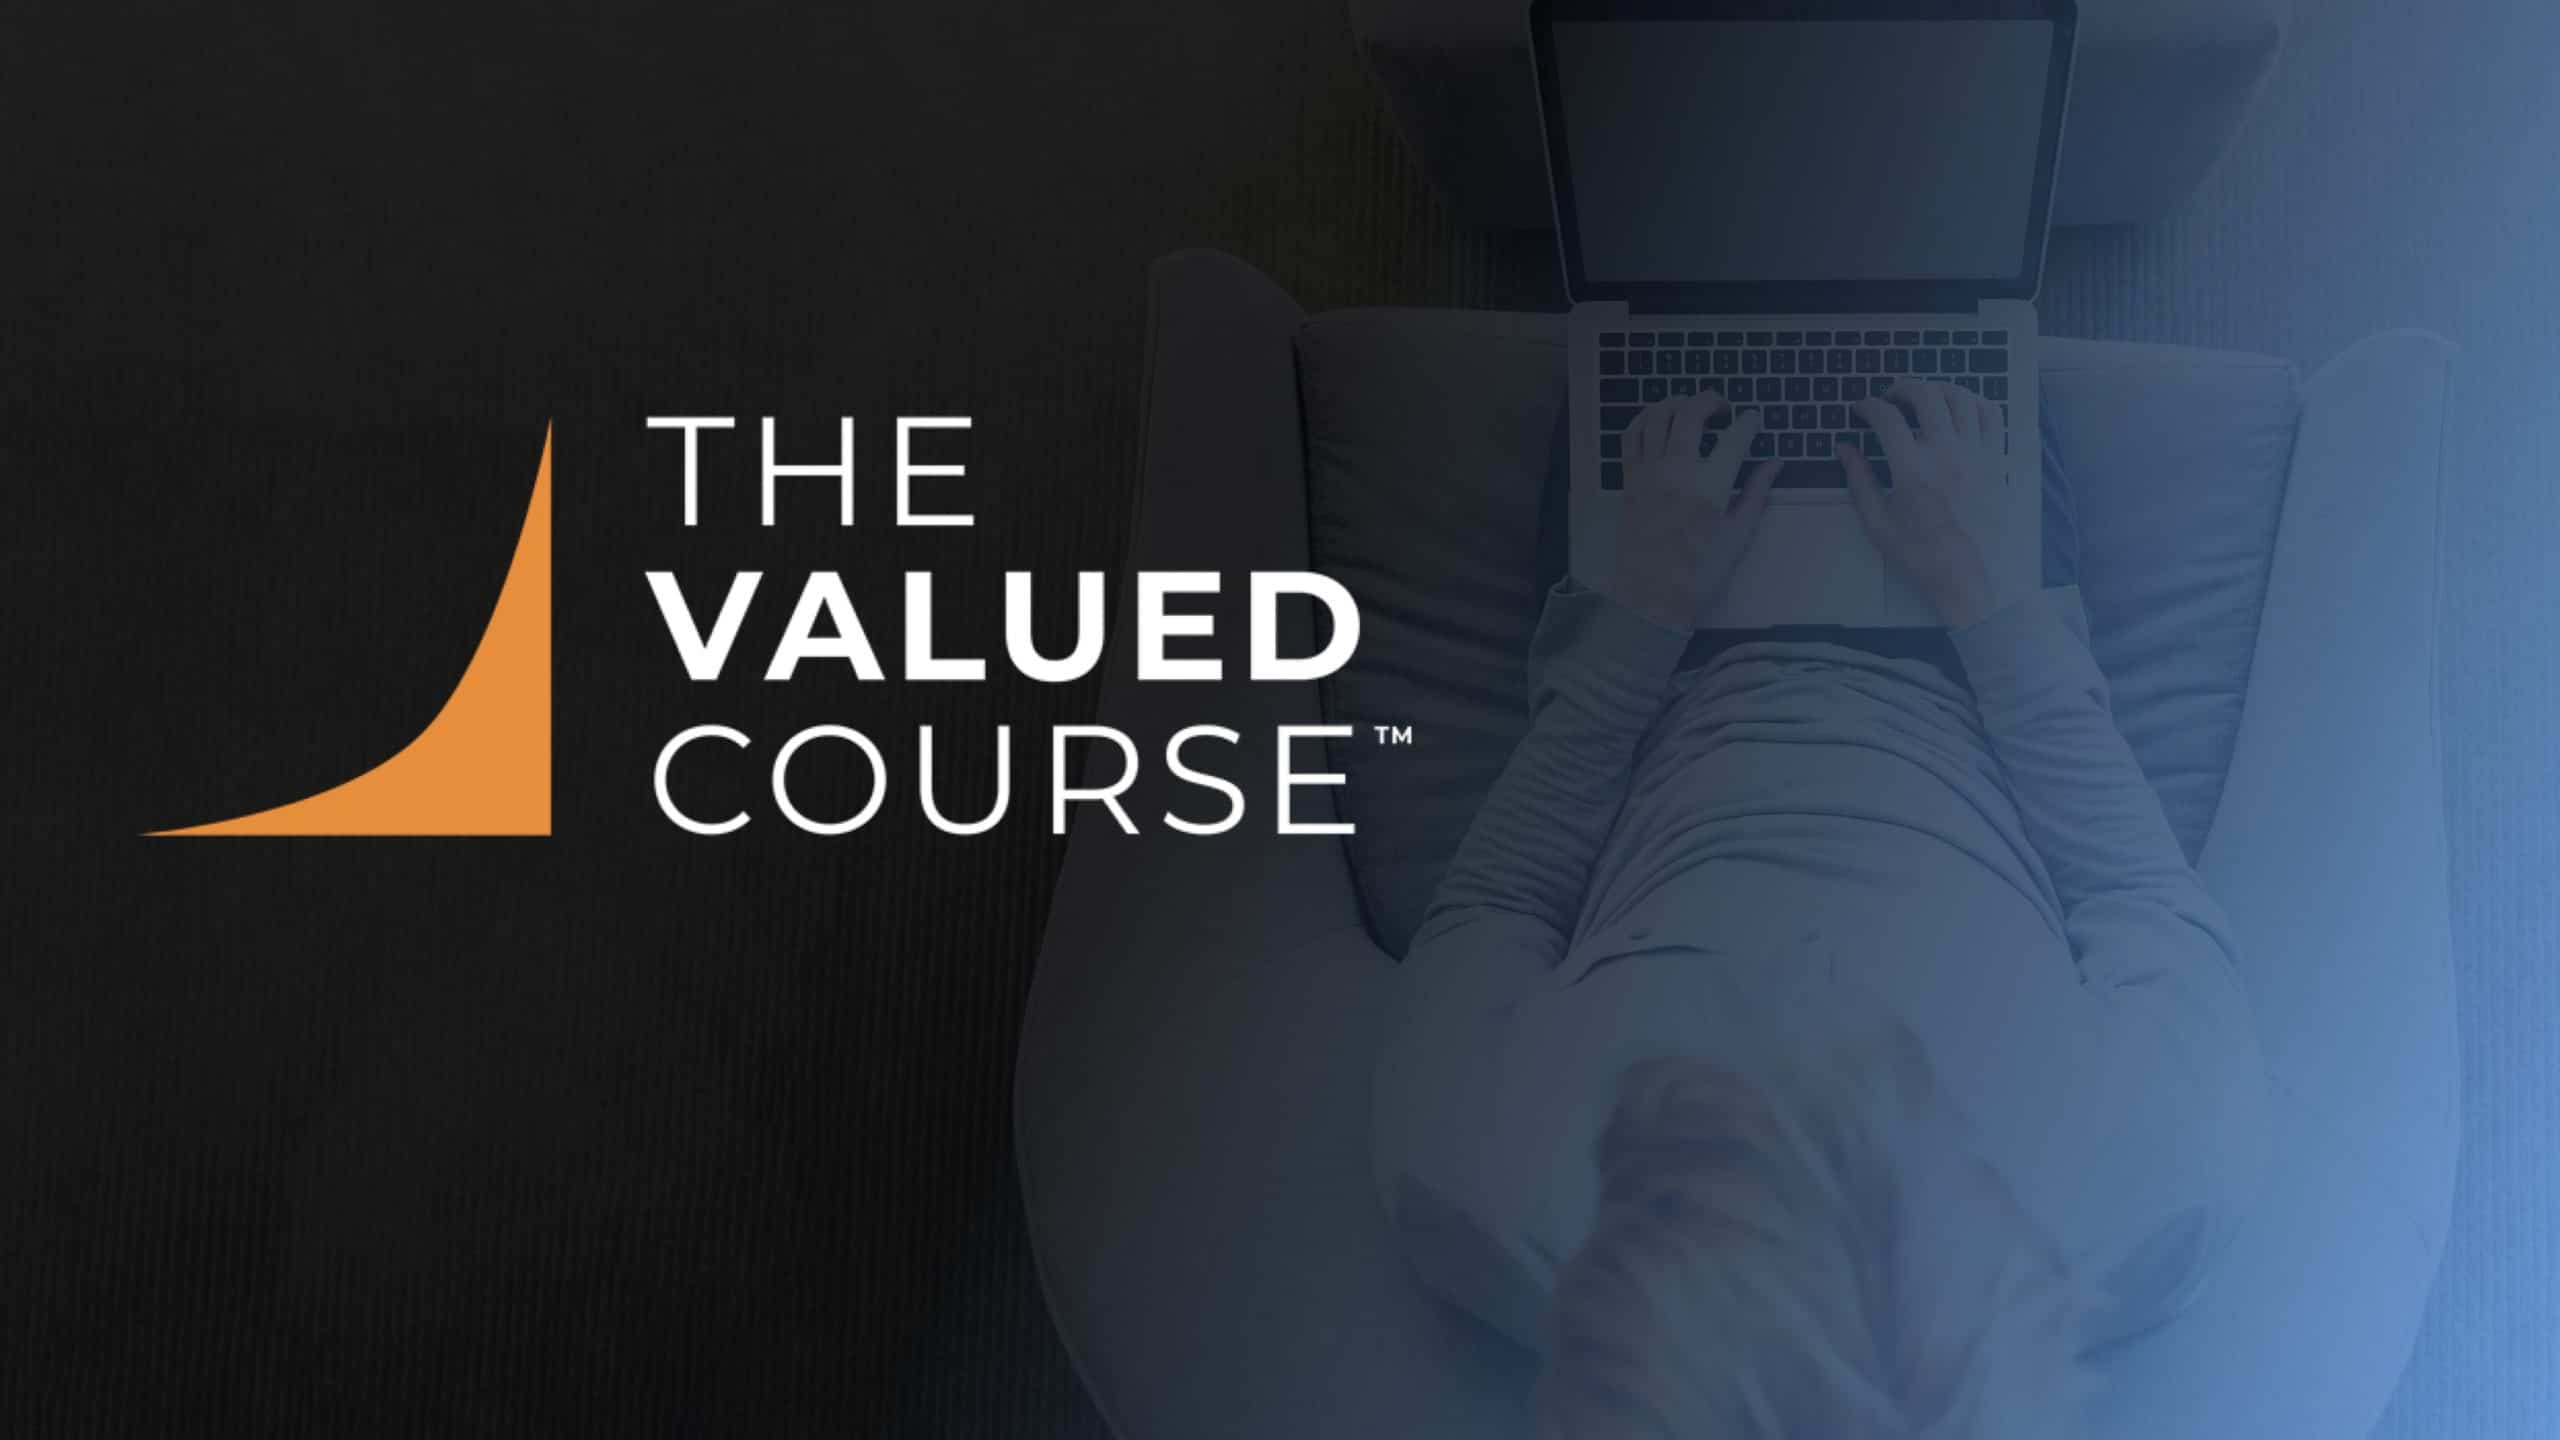 Valued Course CTA image